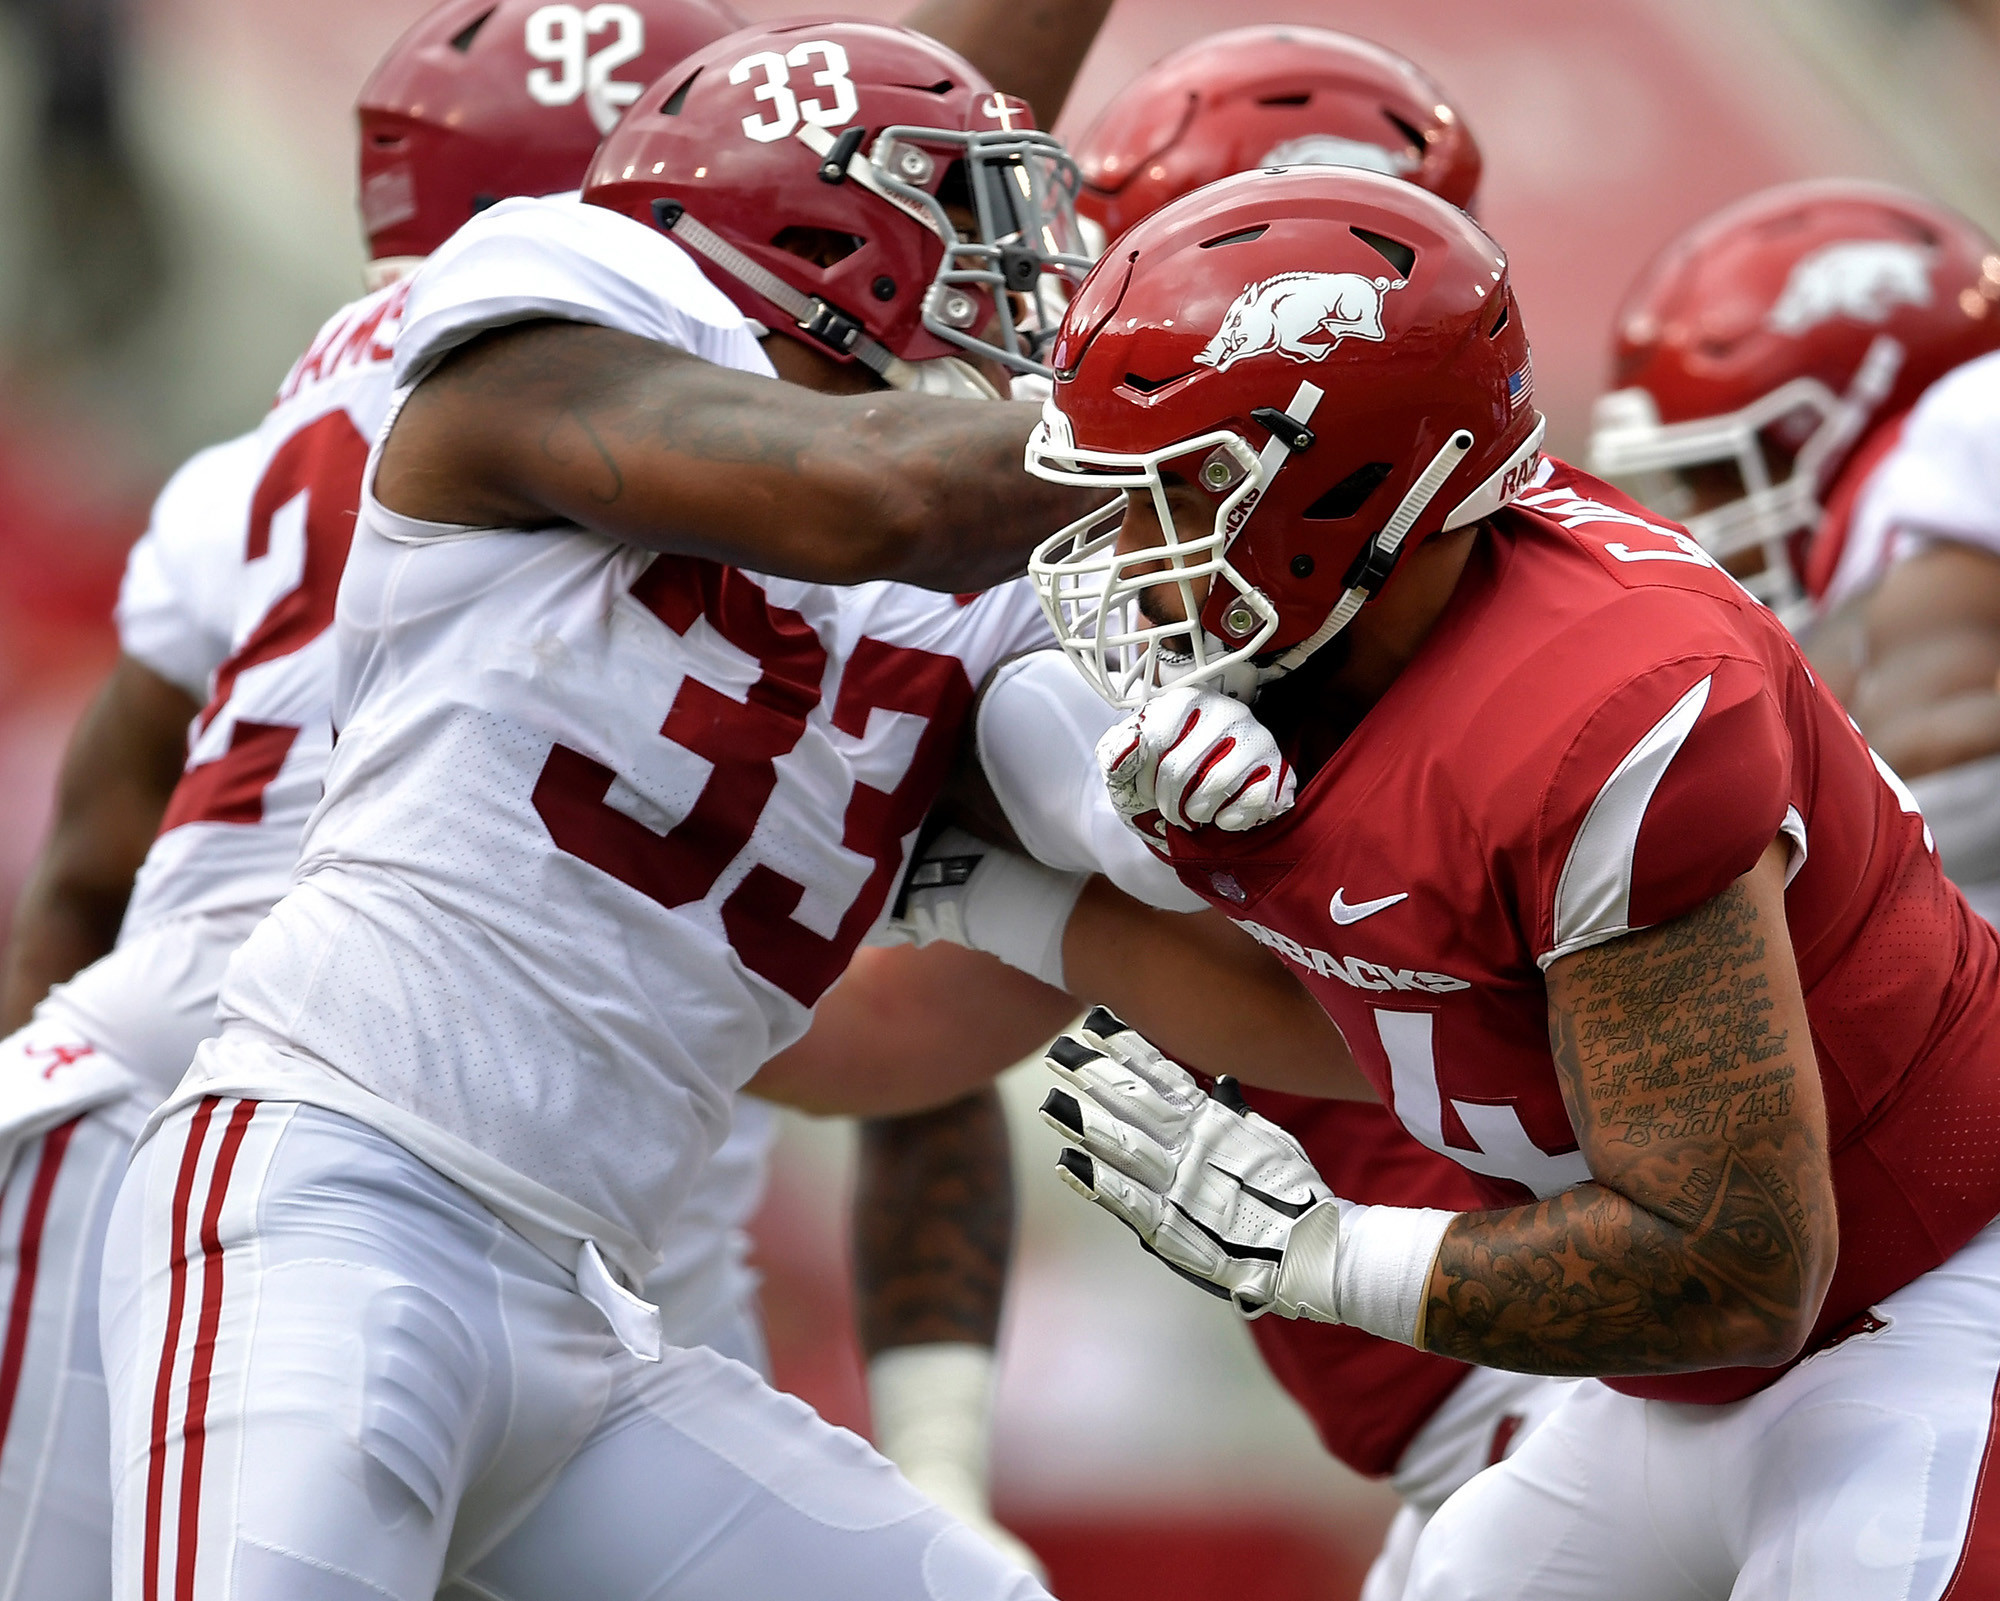 Alabama Crimson Tide linebacker Anfernee Jennings (33) during the first half of the NCAA football game against the Arkansas Razorbacks at Razorback Stadium on Oct. 6, 2018, in Fayetteville, Ark. Alabama defeated Arkansas 65-31. Alabama defeated Arkansas 65-31. (Photo by Lee Walls)